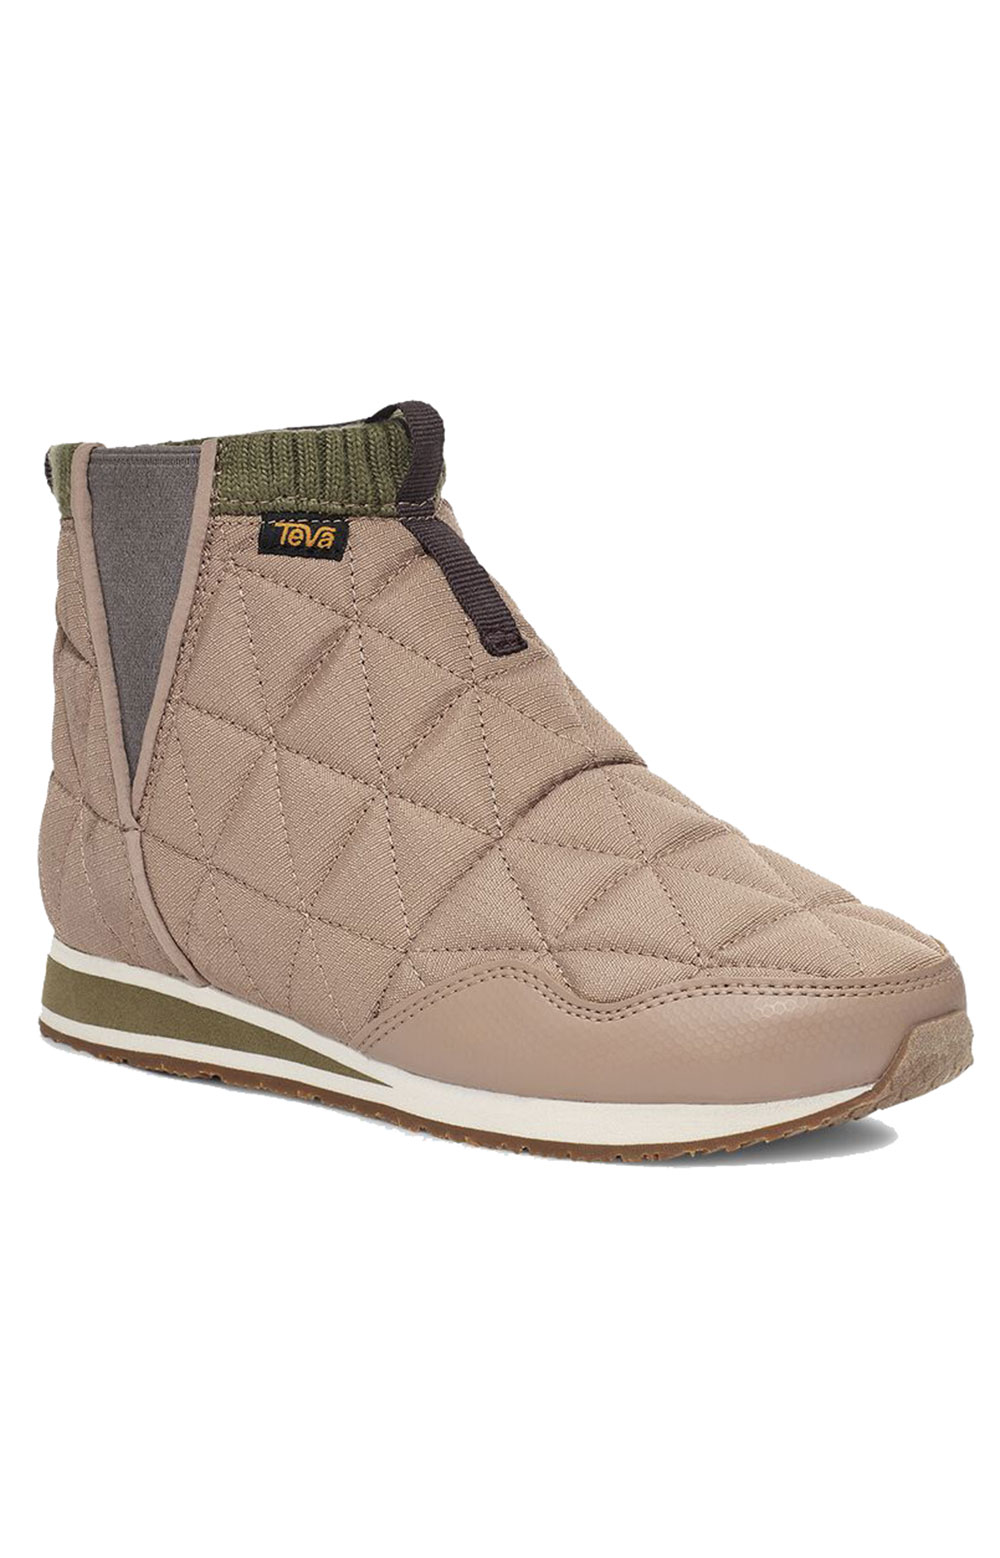 (1123431) ReEMBER Mid Shoes - Macaroon/Olive 2